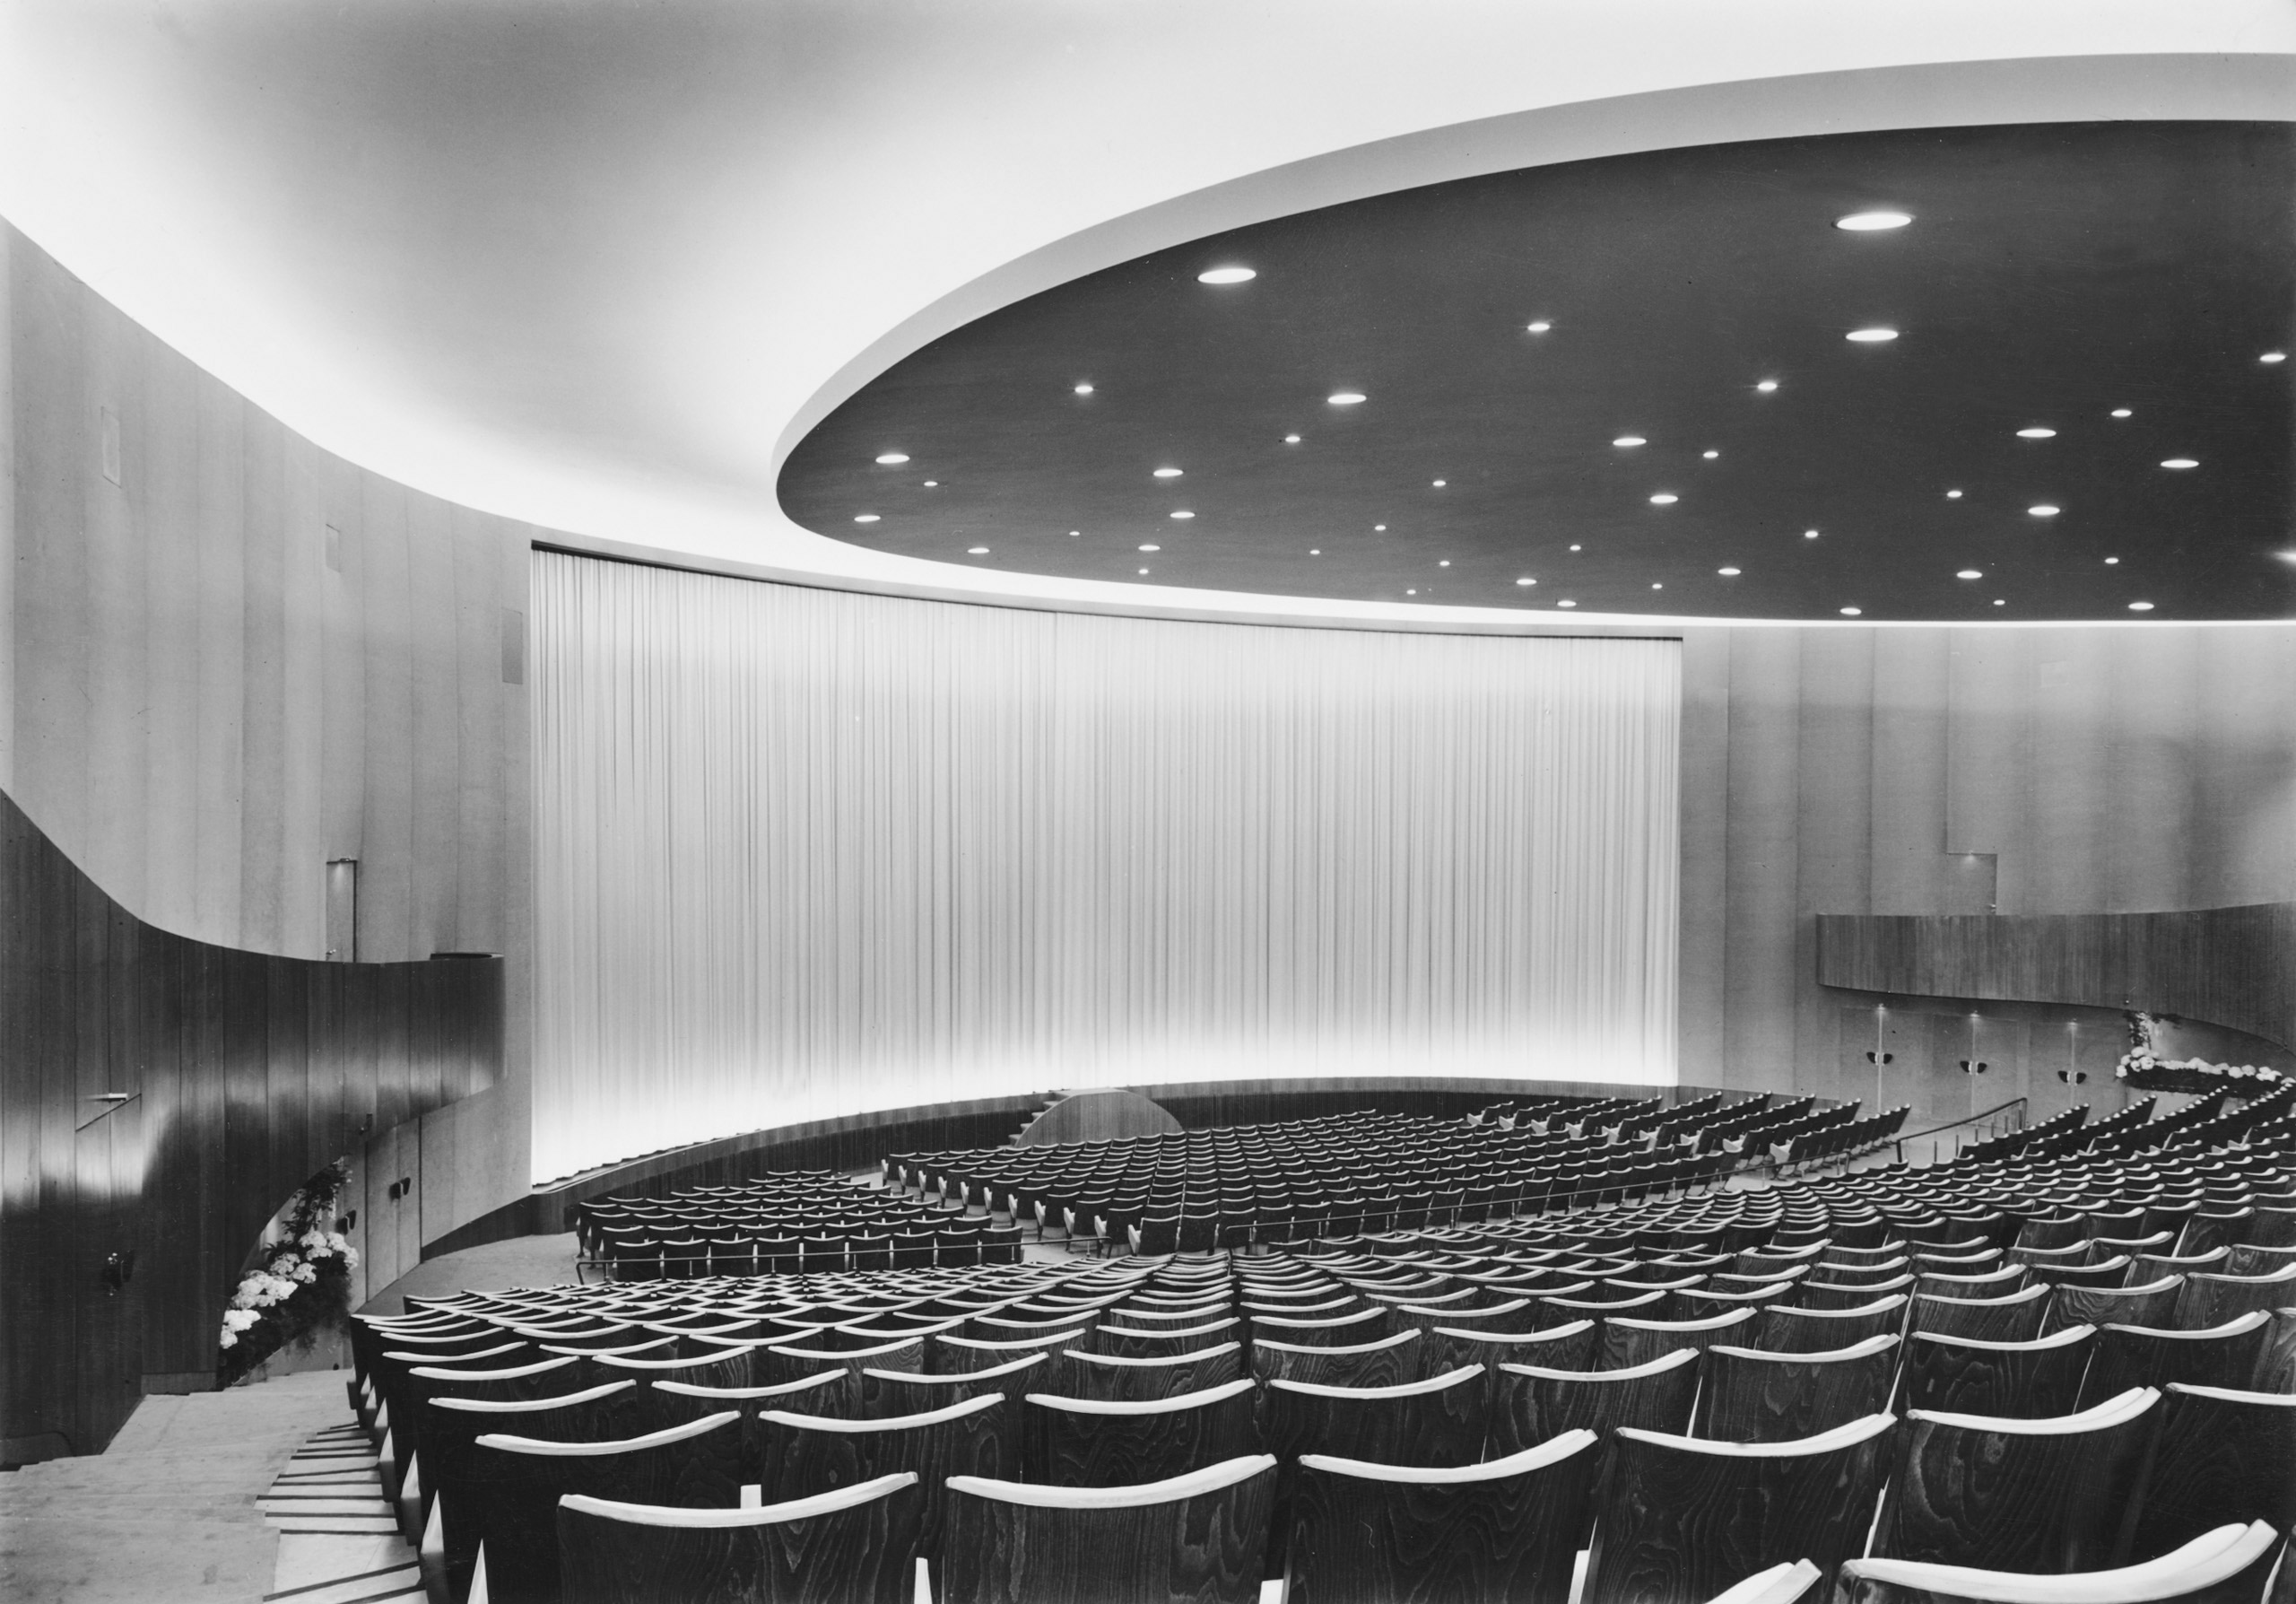 Black and white photo: auditorium facing the screen